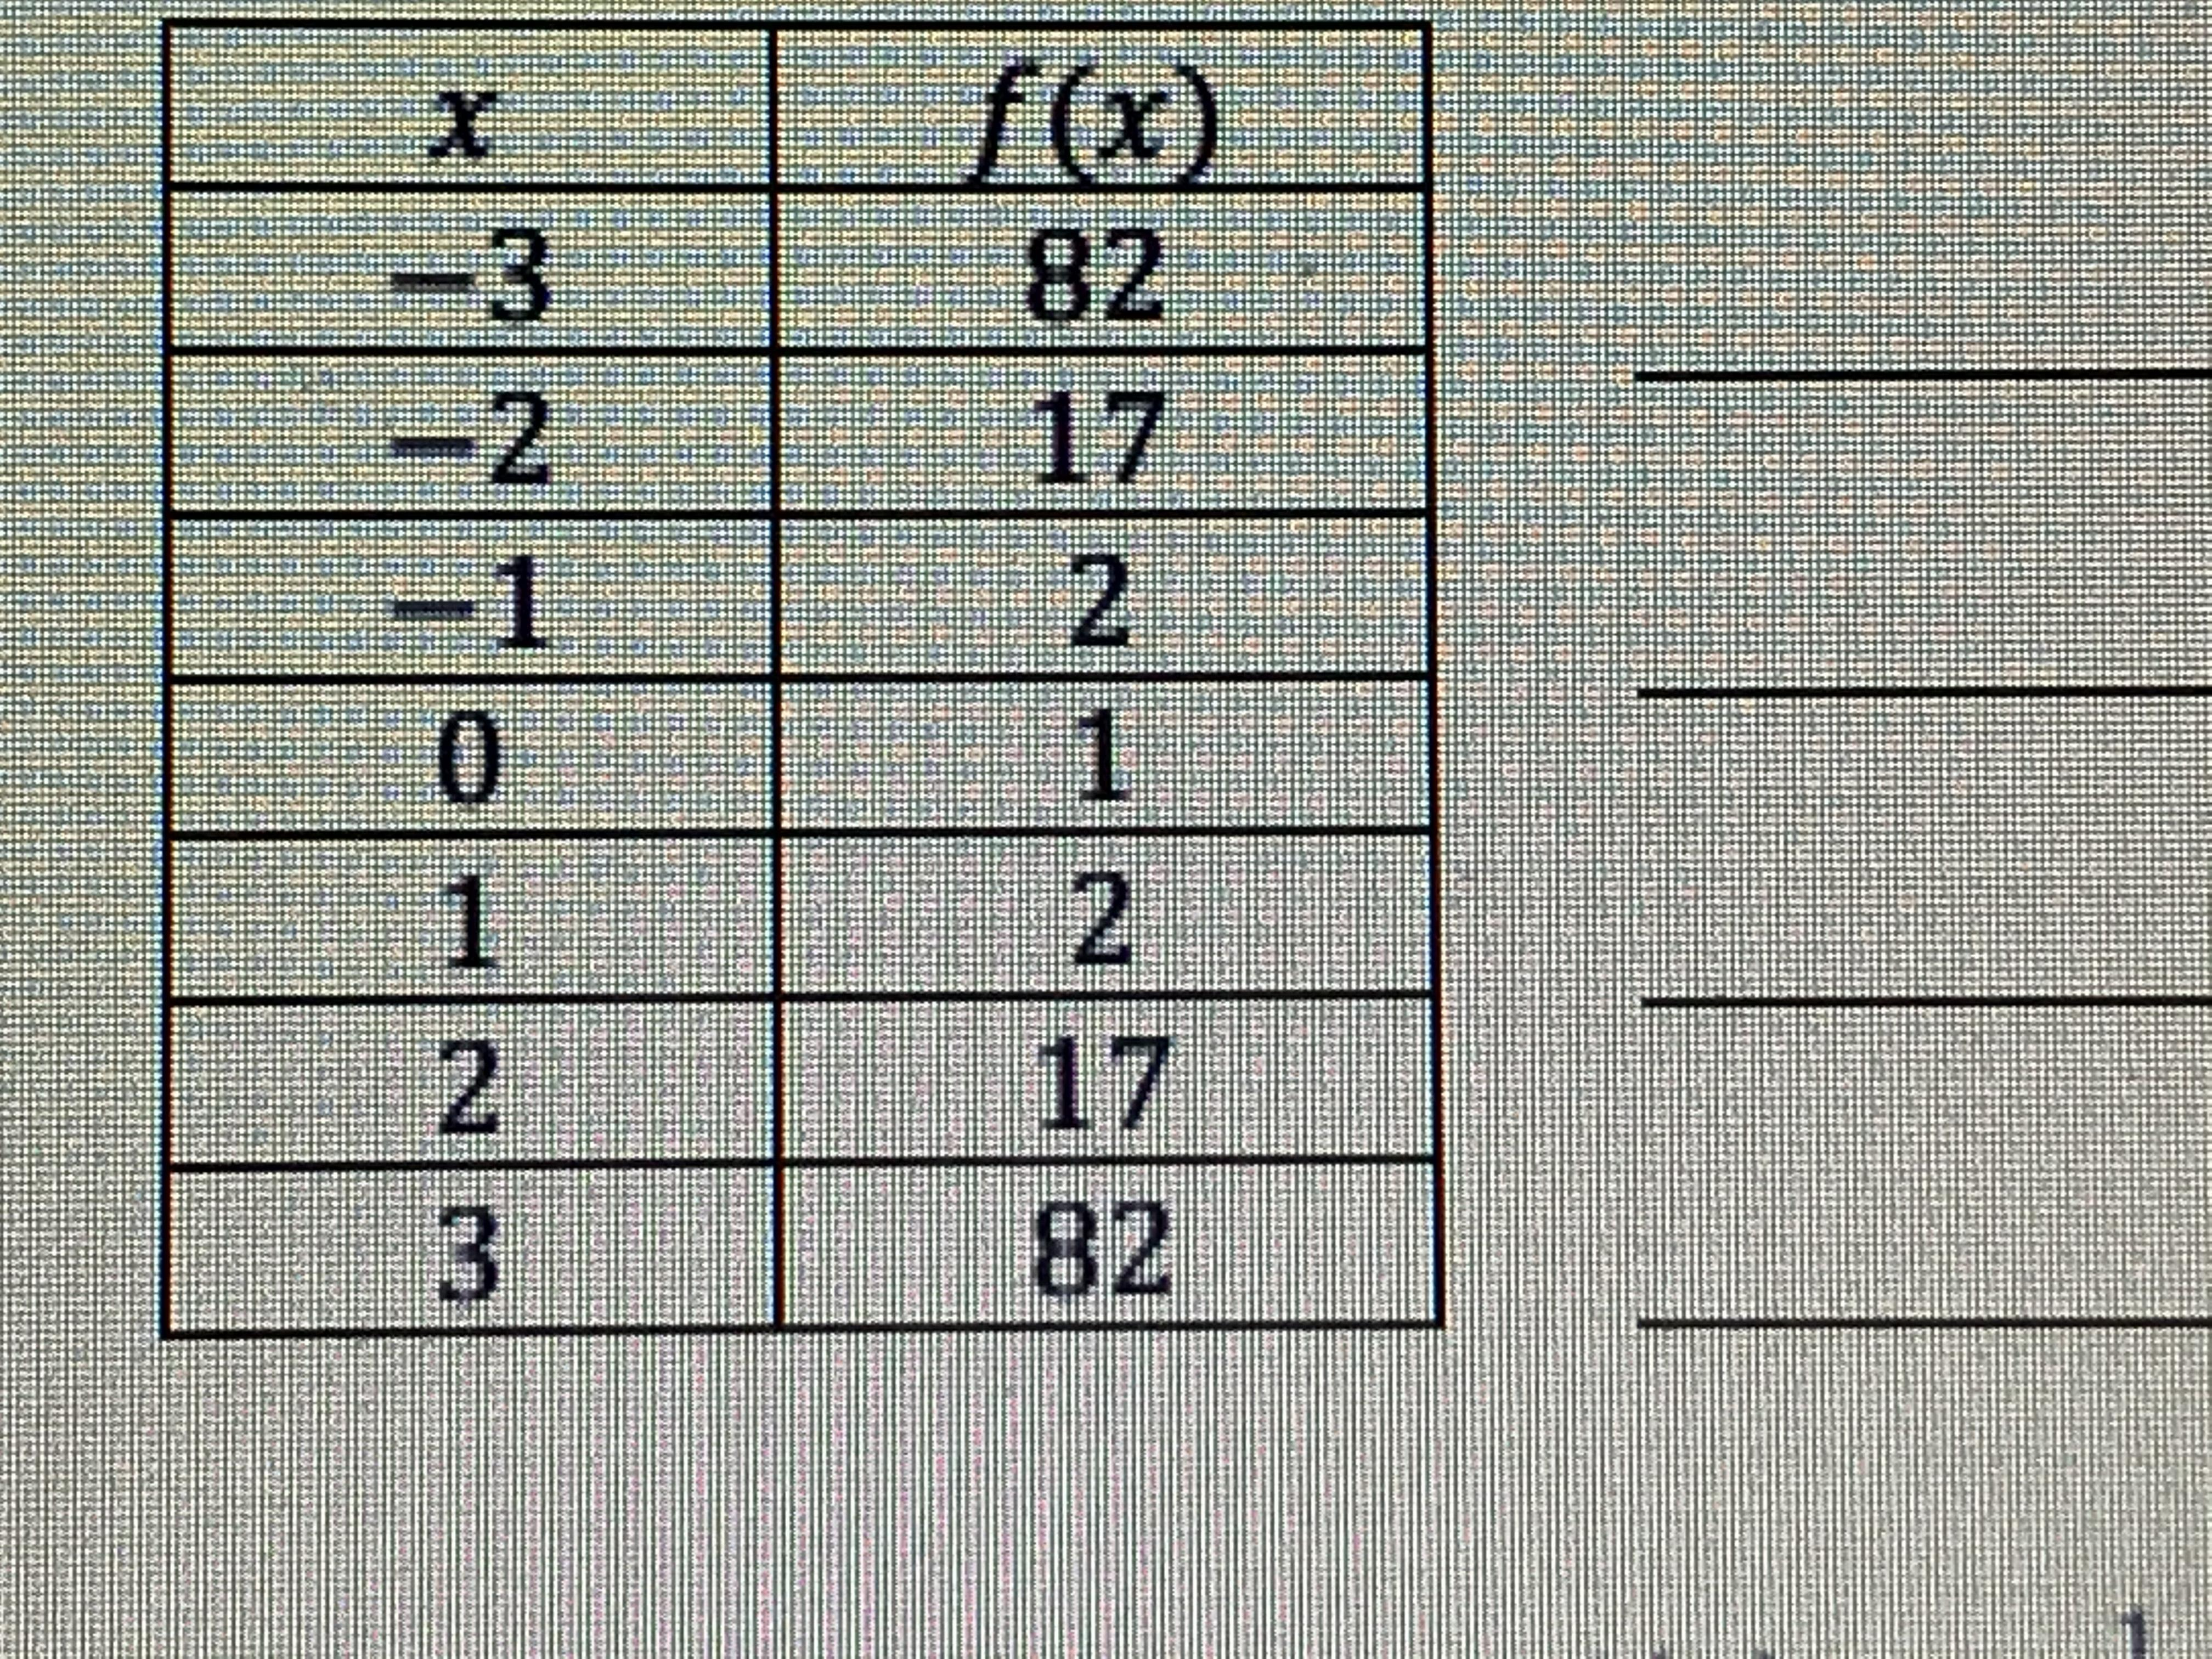 Help The Table Shows Ordered Pairs For A Polynomial